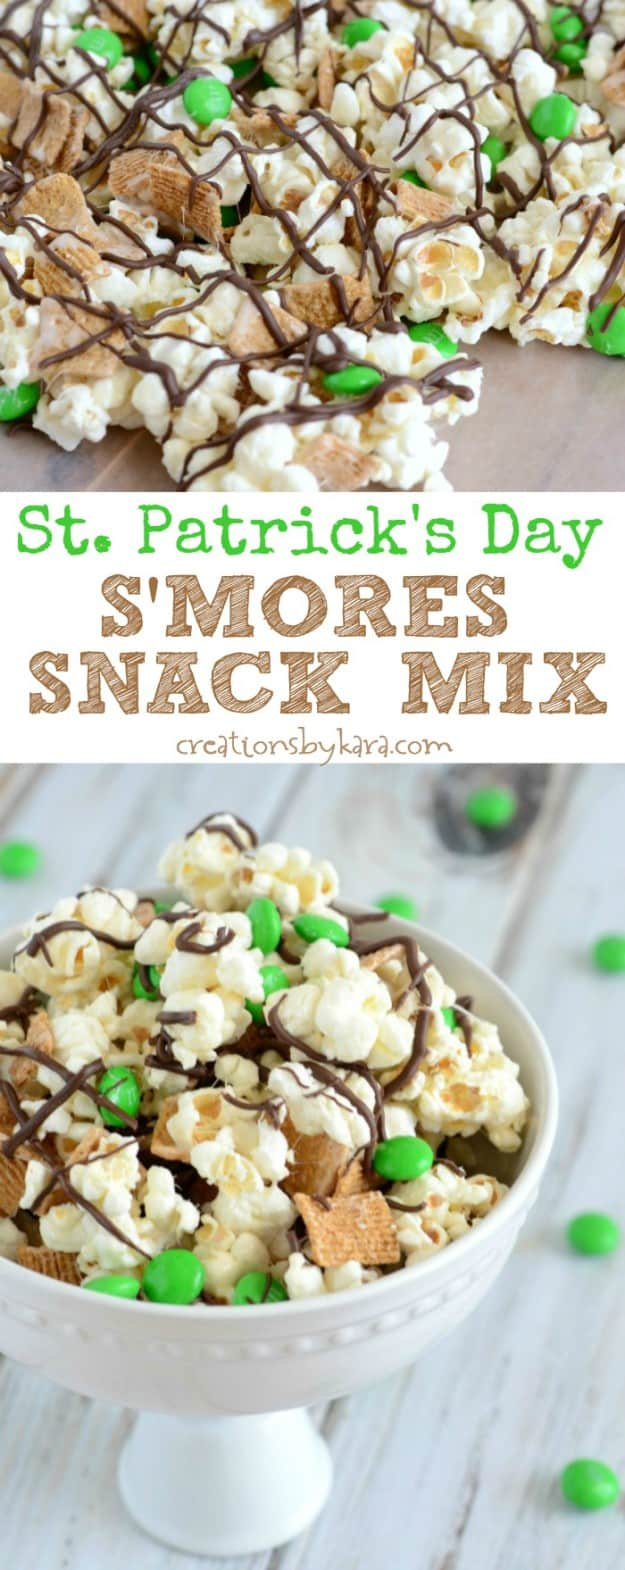 St. Patricks Day S'more Snack Mix recipe collage